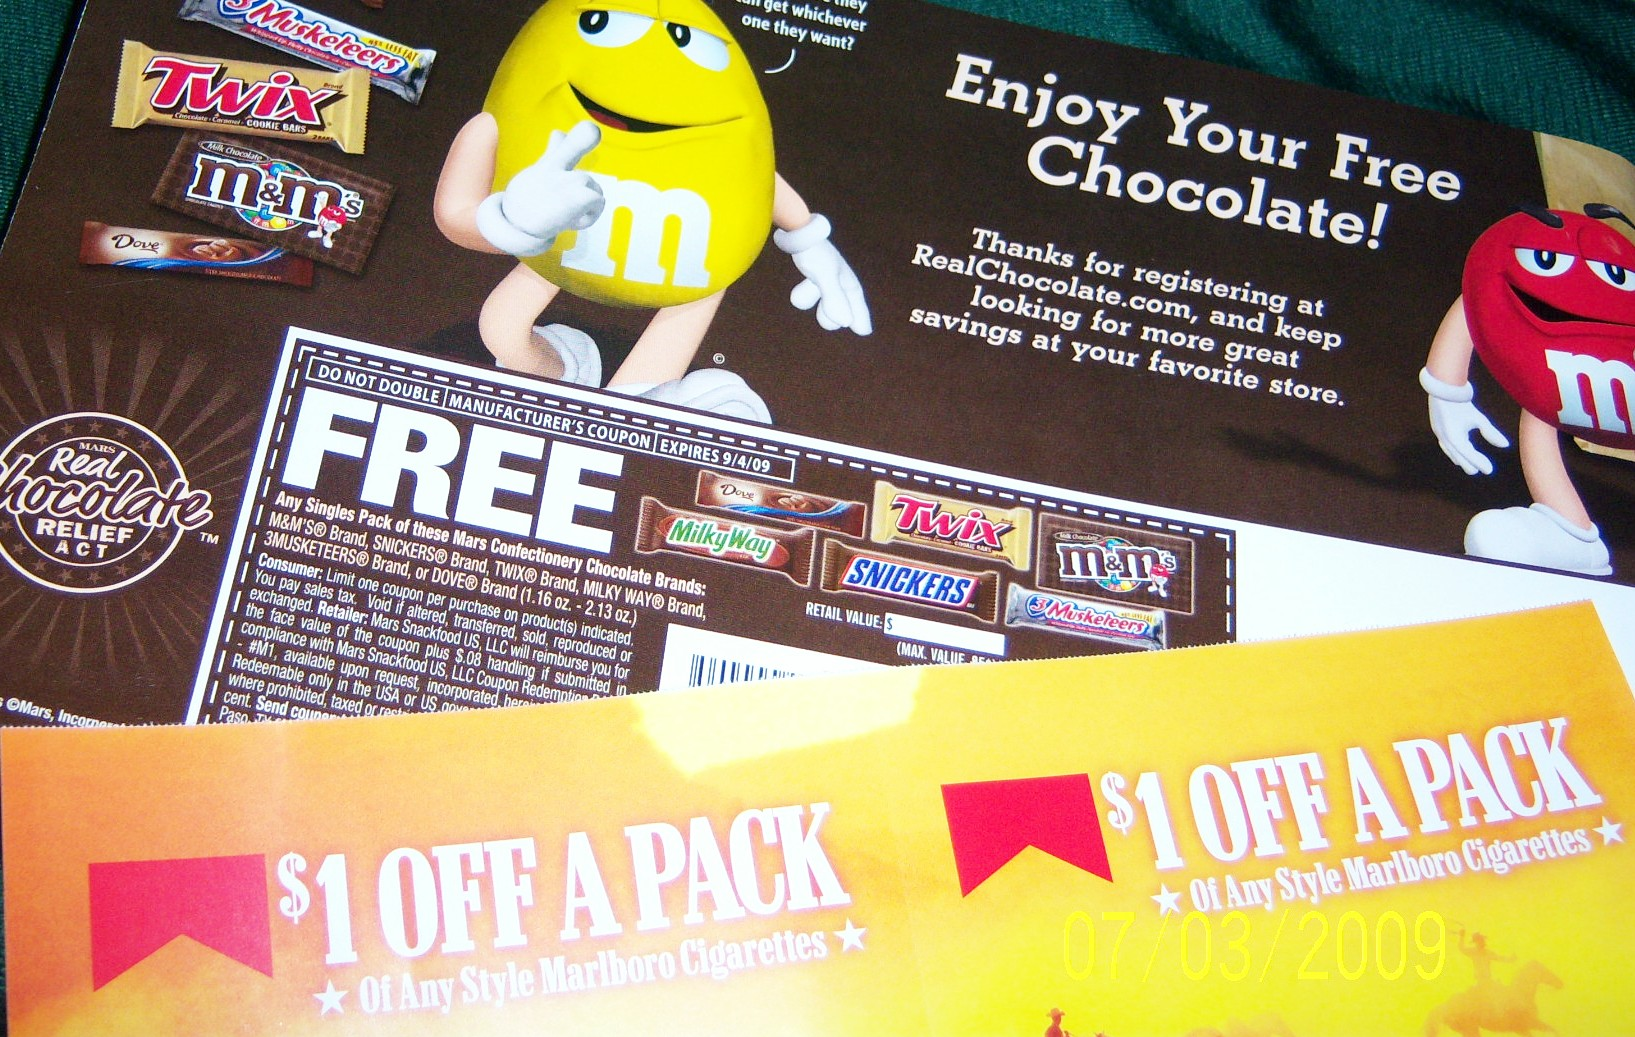 photograph relating to Printable Marlboro Coupons known as Free of charge marlboro cigarette discount coupons by means of deliver - Poolsupplyworld coupon